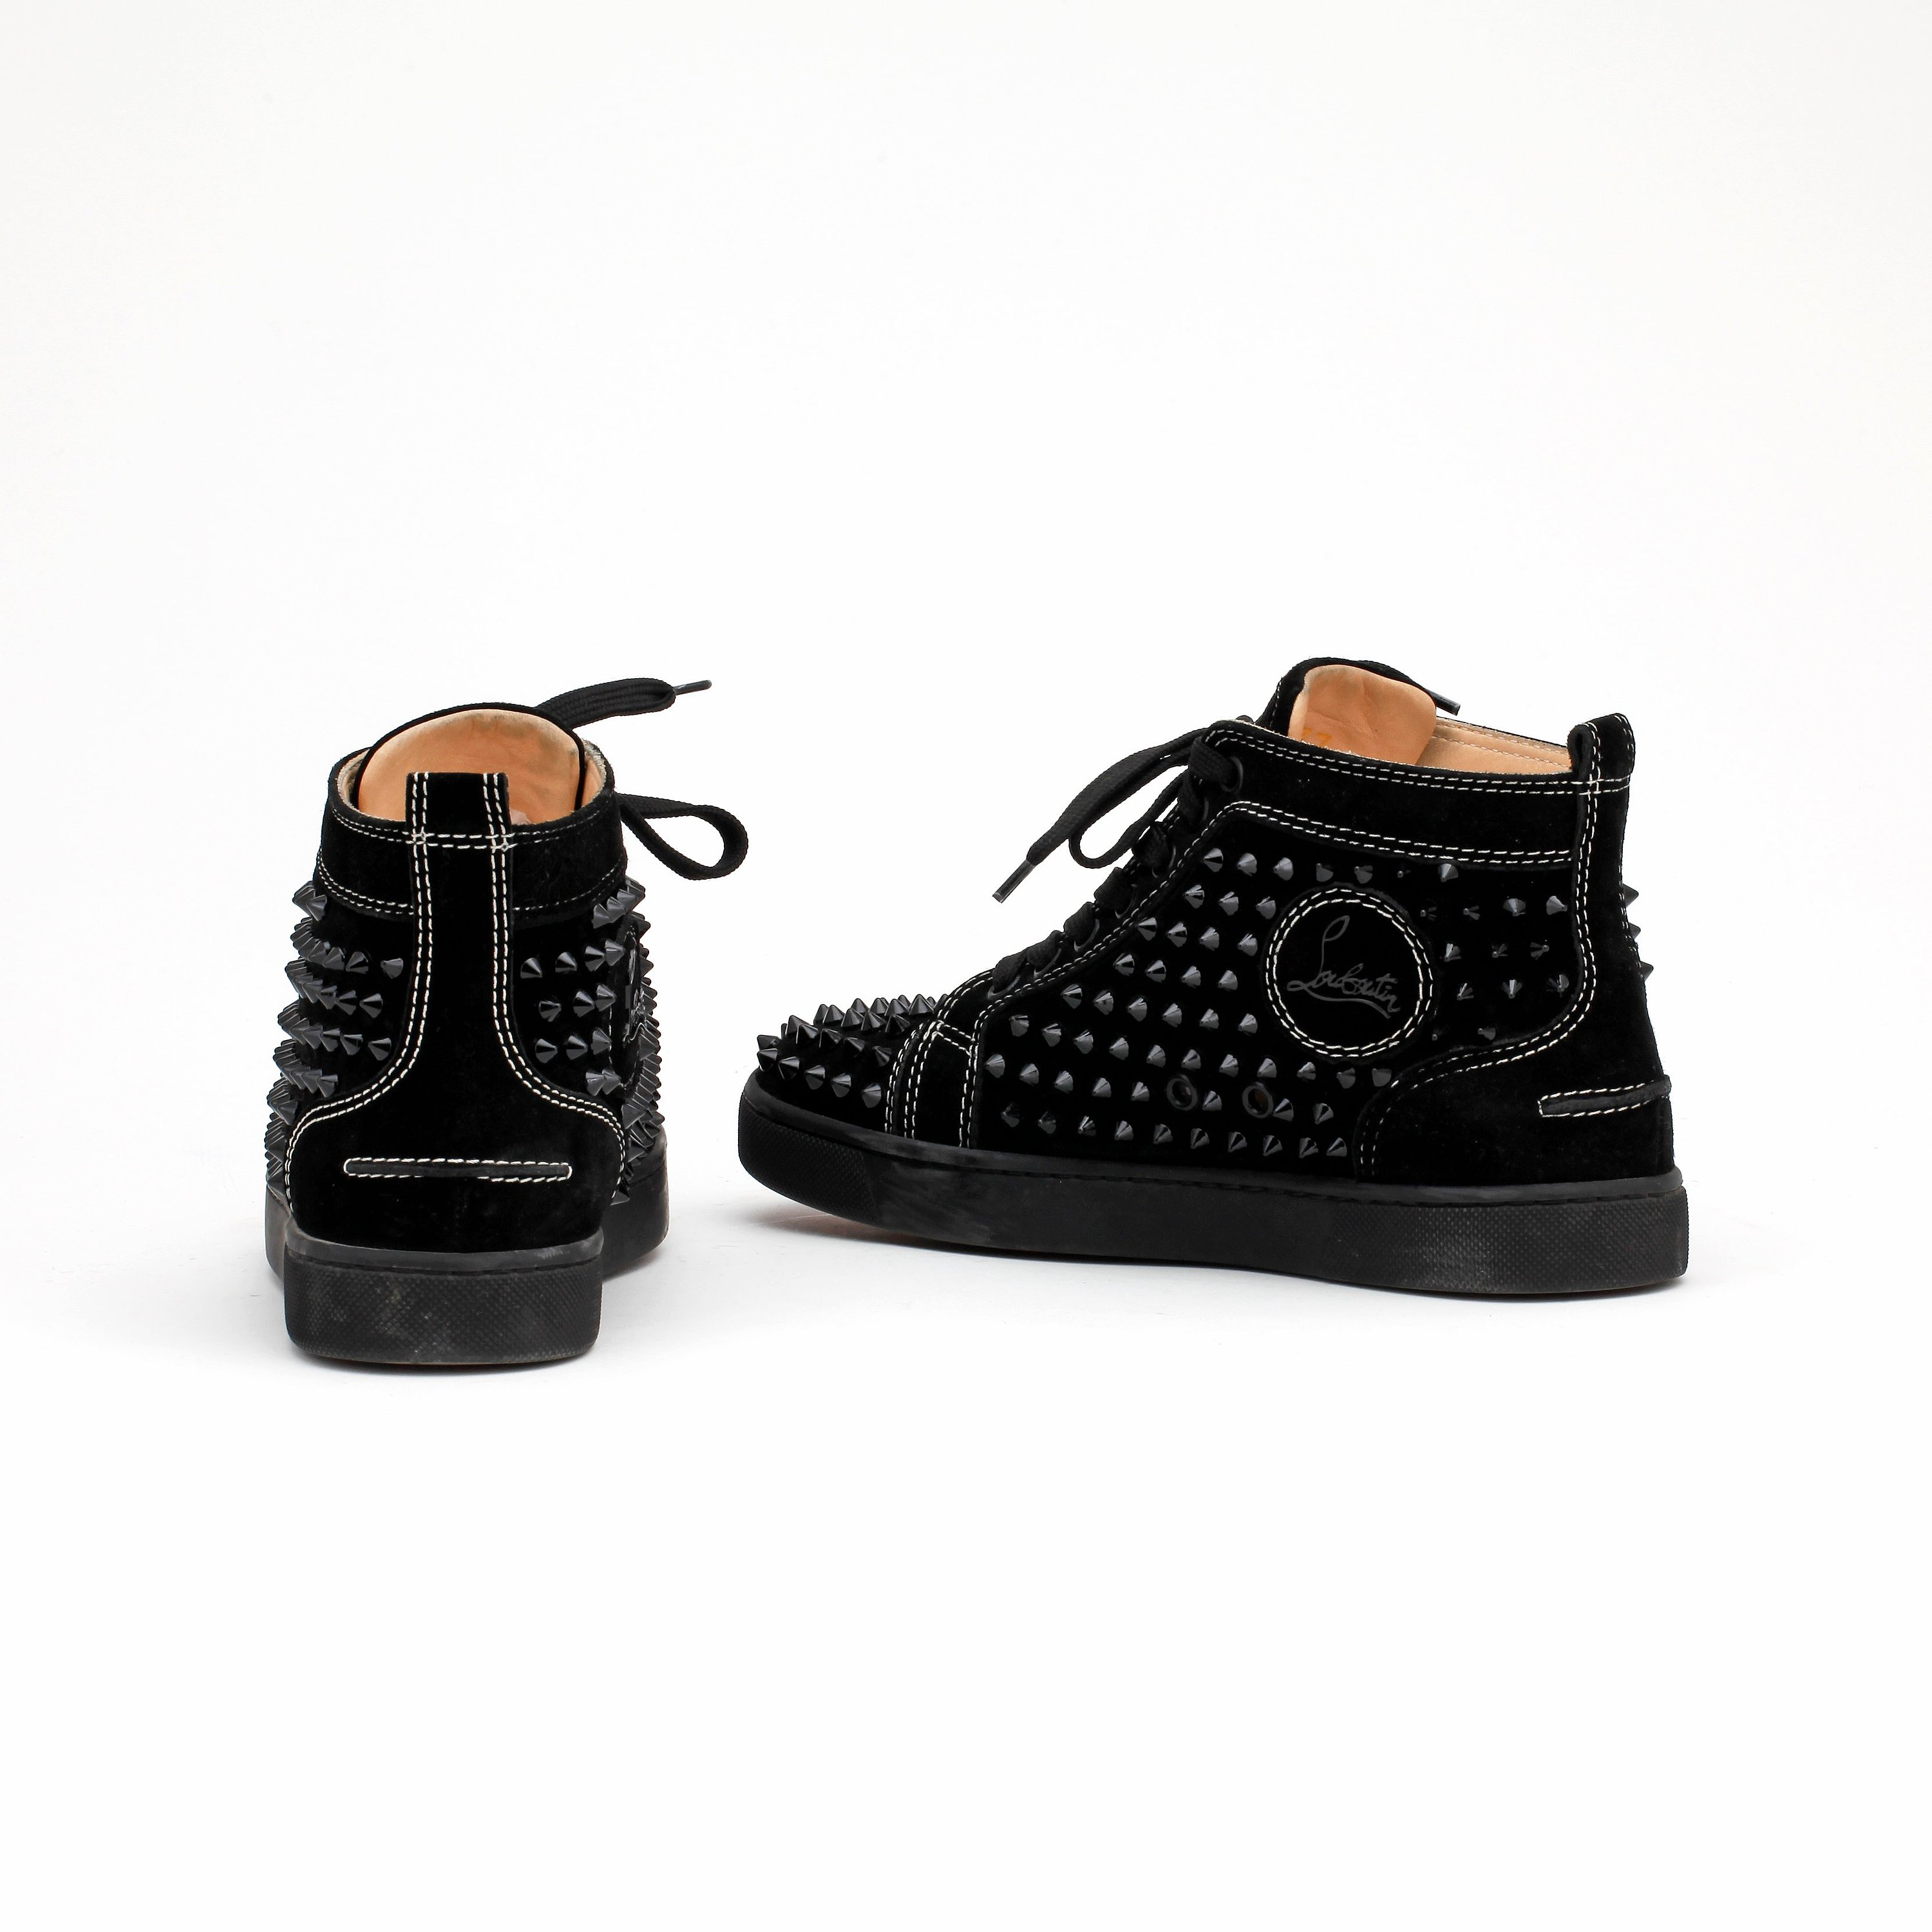 info for 670b7 c1db1 CHRISTIAN LOUBOUTIN, a pair of black suede sneakers,